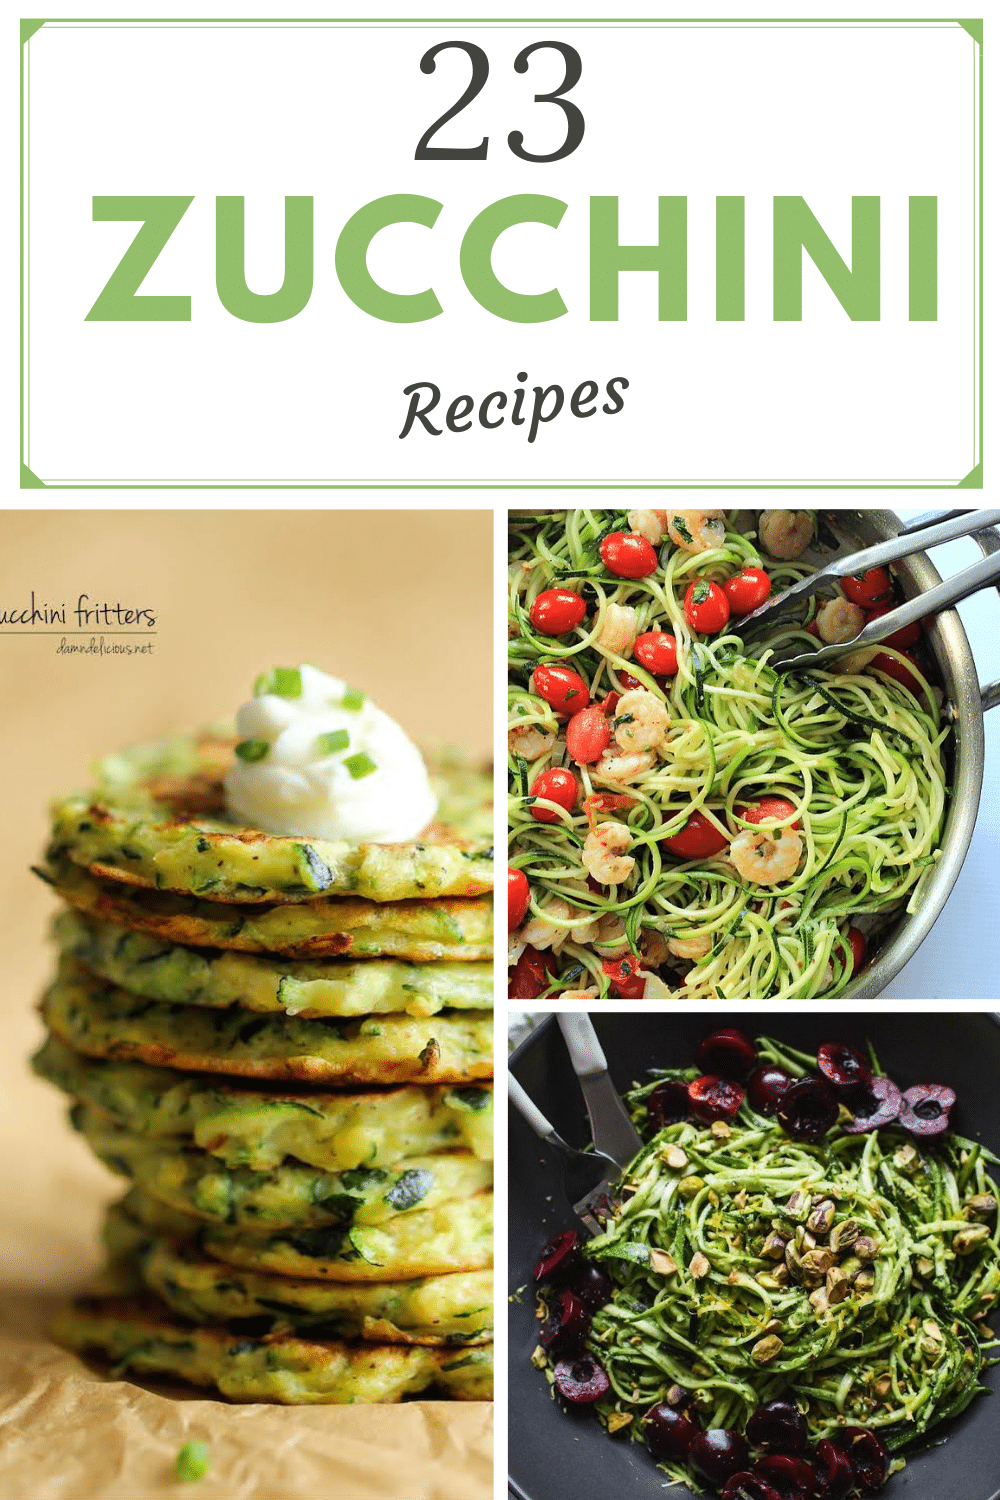 zucchini recipes graphic